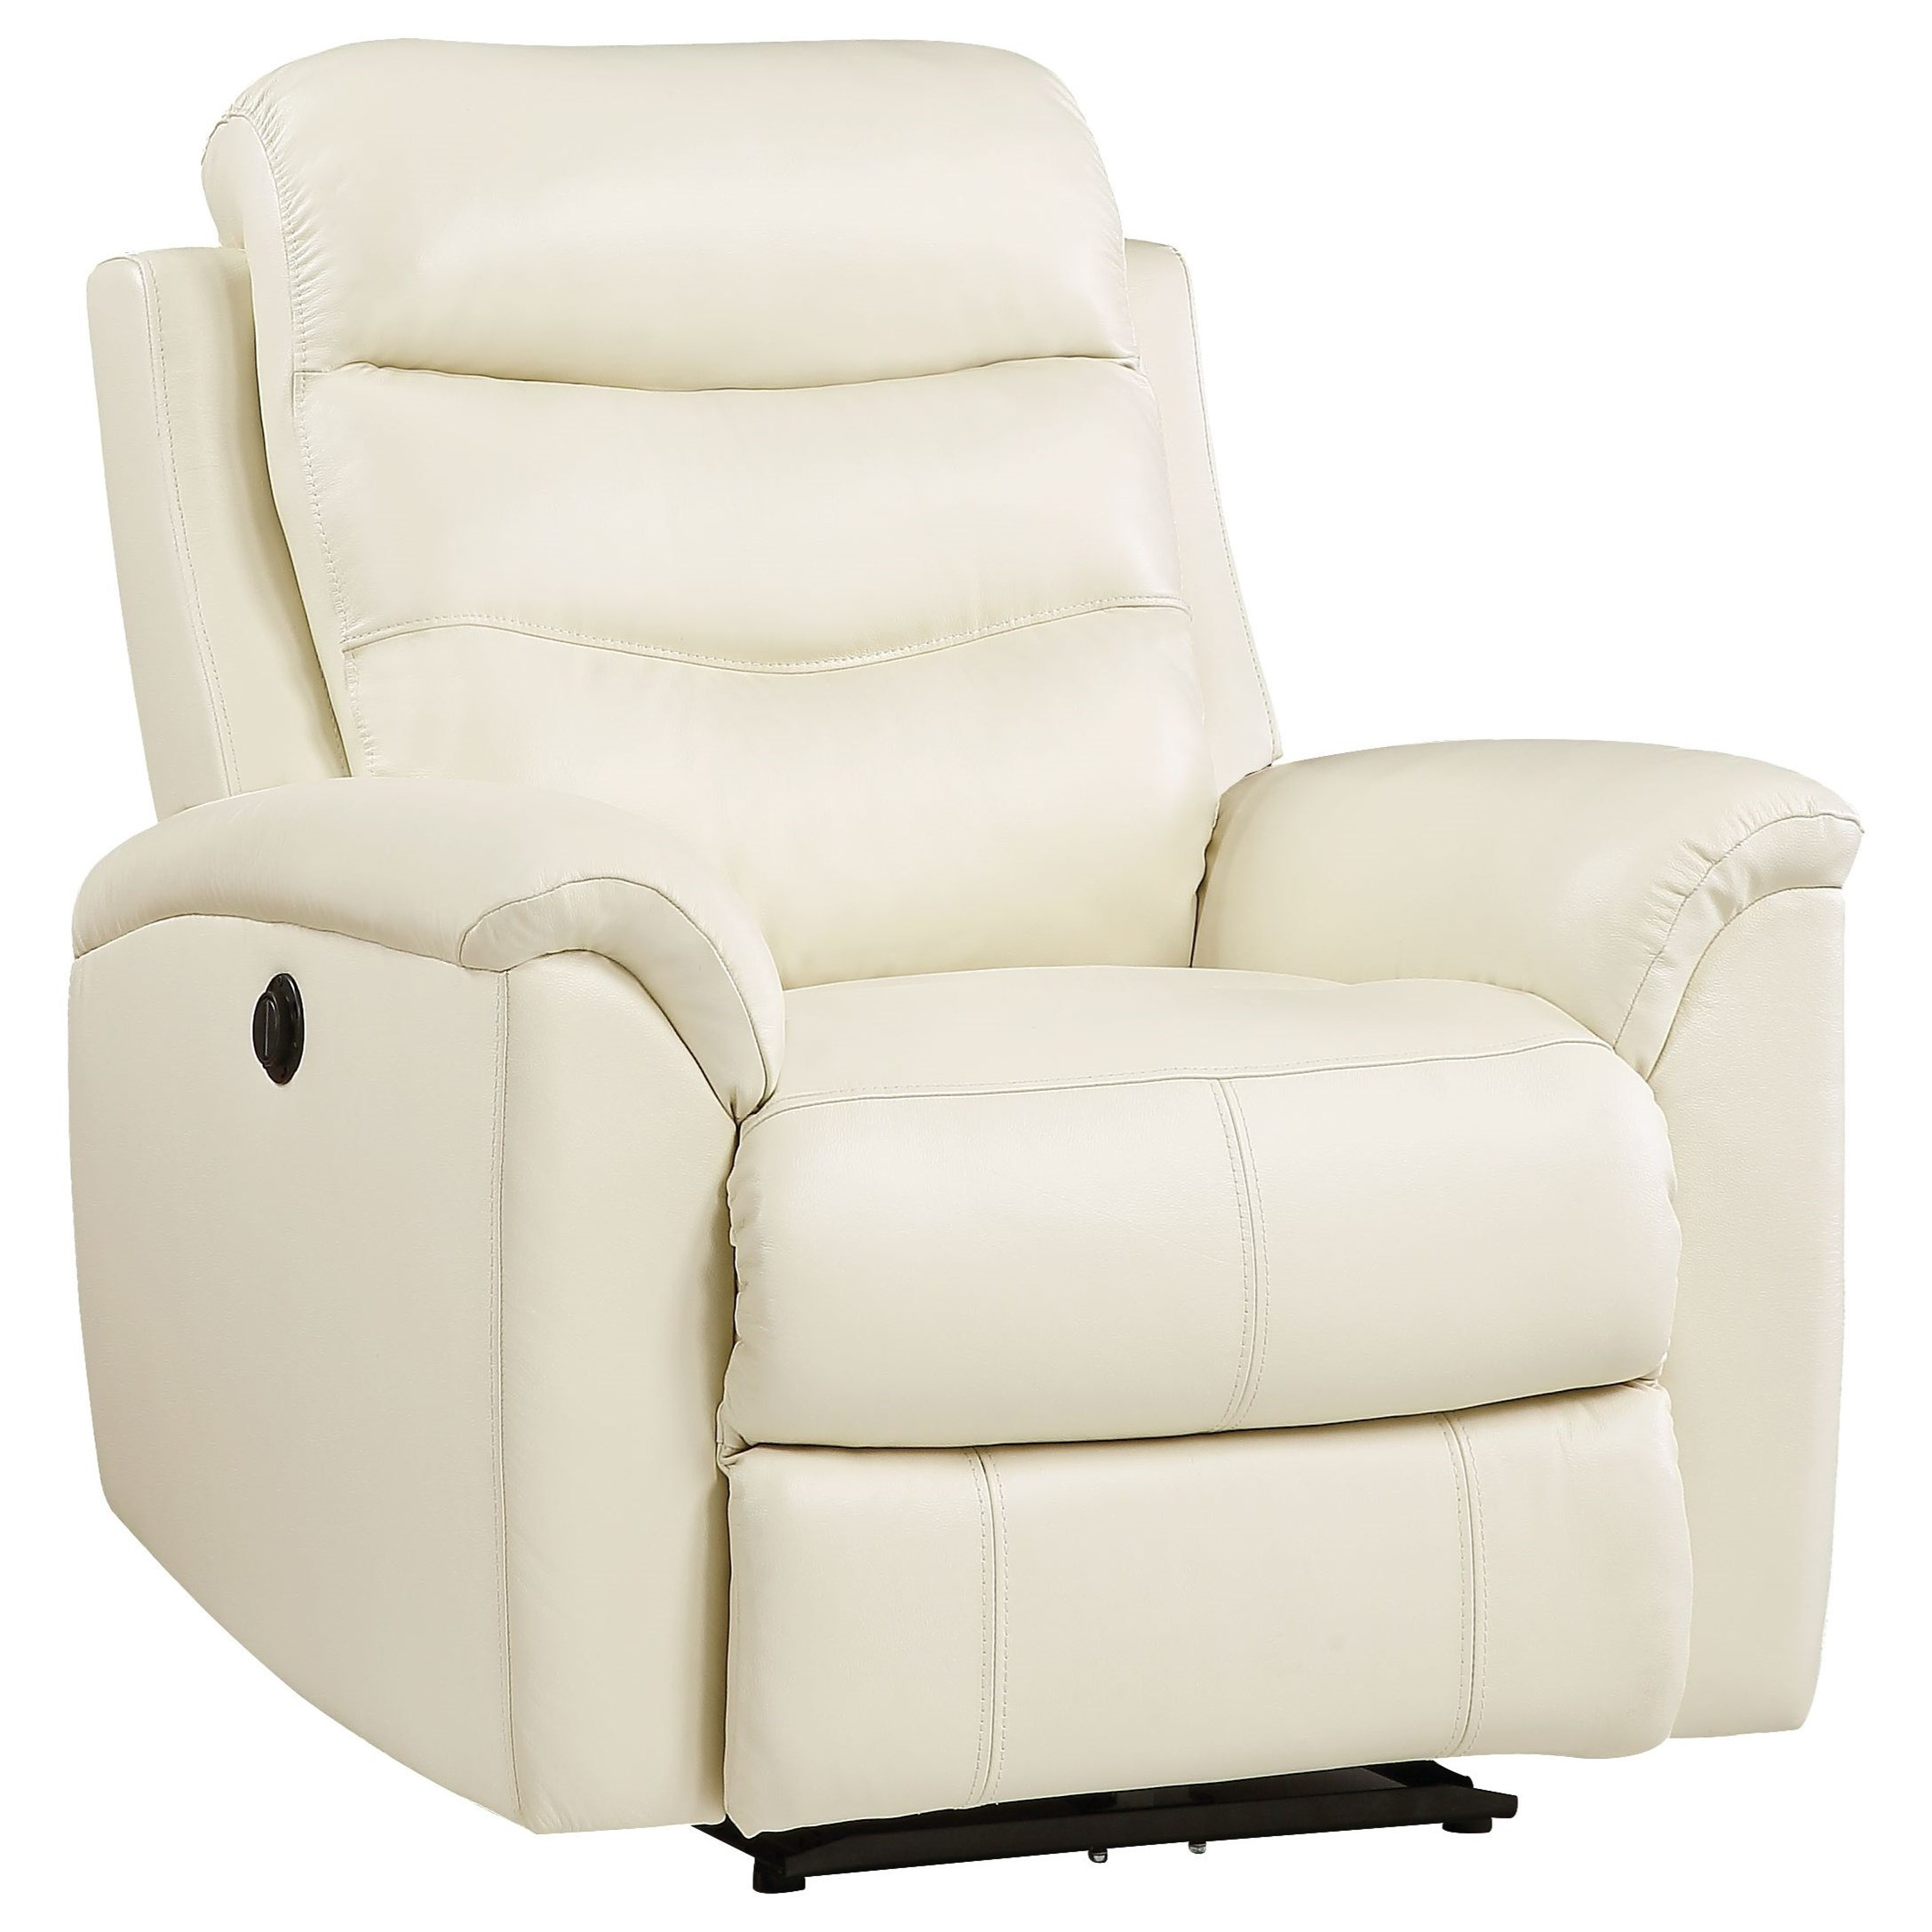 Ava Power Recliner by Acme Furniture at Nassau Furniture and Mattress